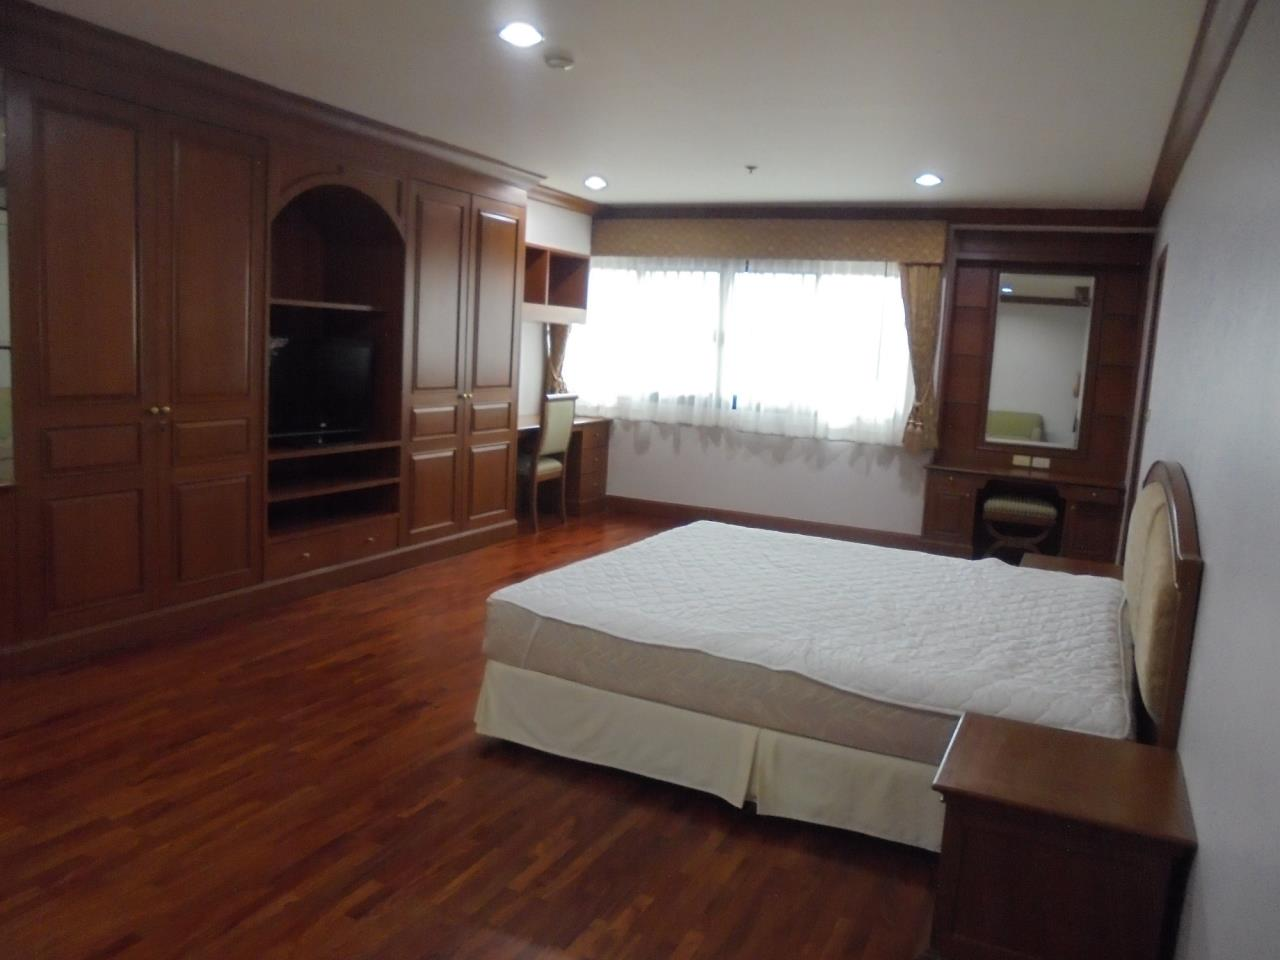 RE/MAX CondoDee Agency's Penthouse for Rent in Asoke - Quite & Central Location 4